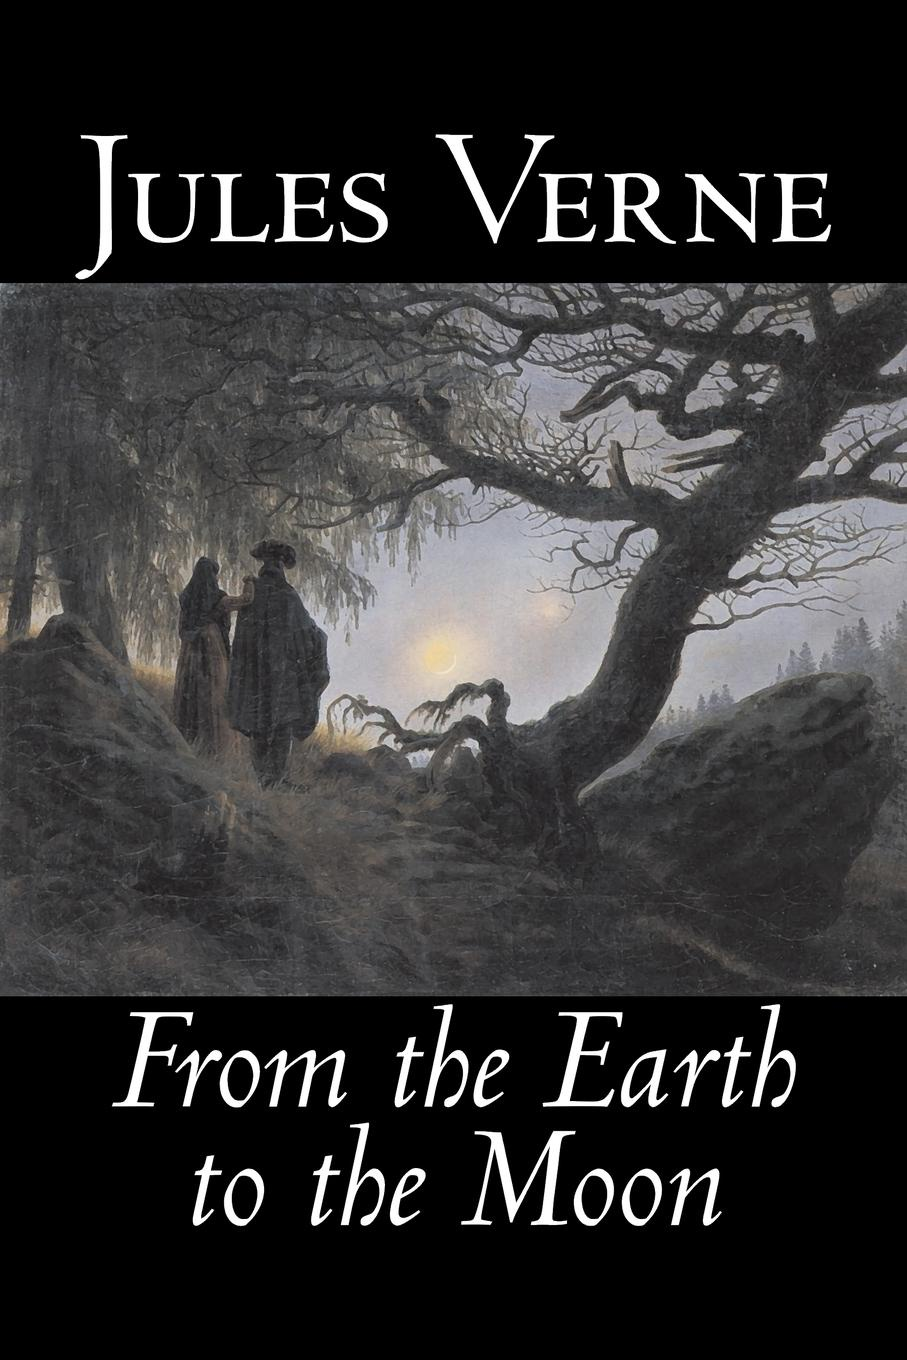 Jules Verne From the Earth to the Moon by Jules Verne, Fiction, Fantasy & Magic